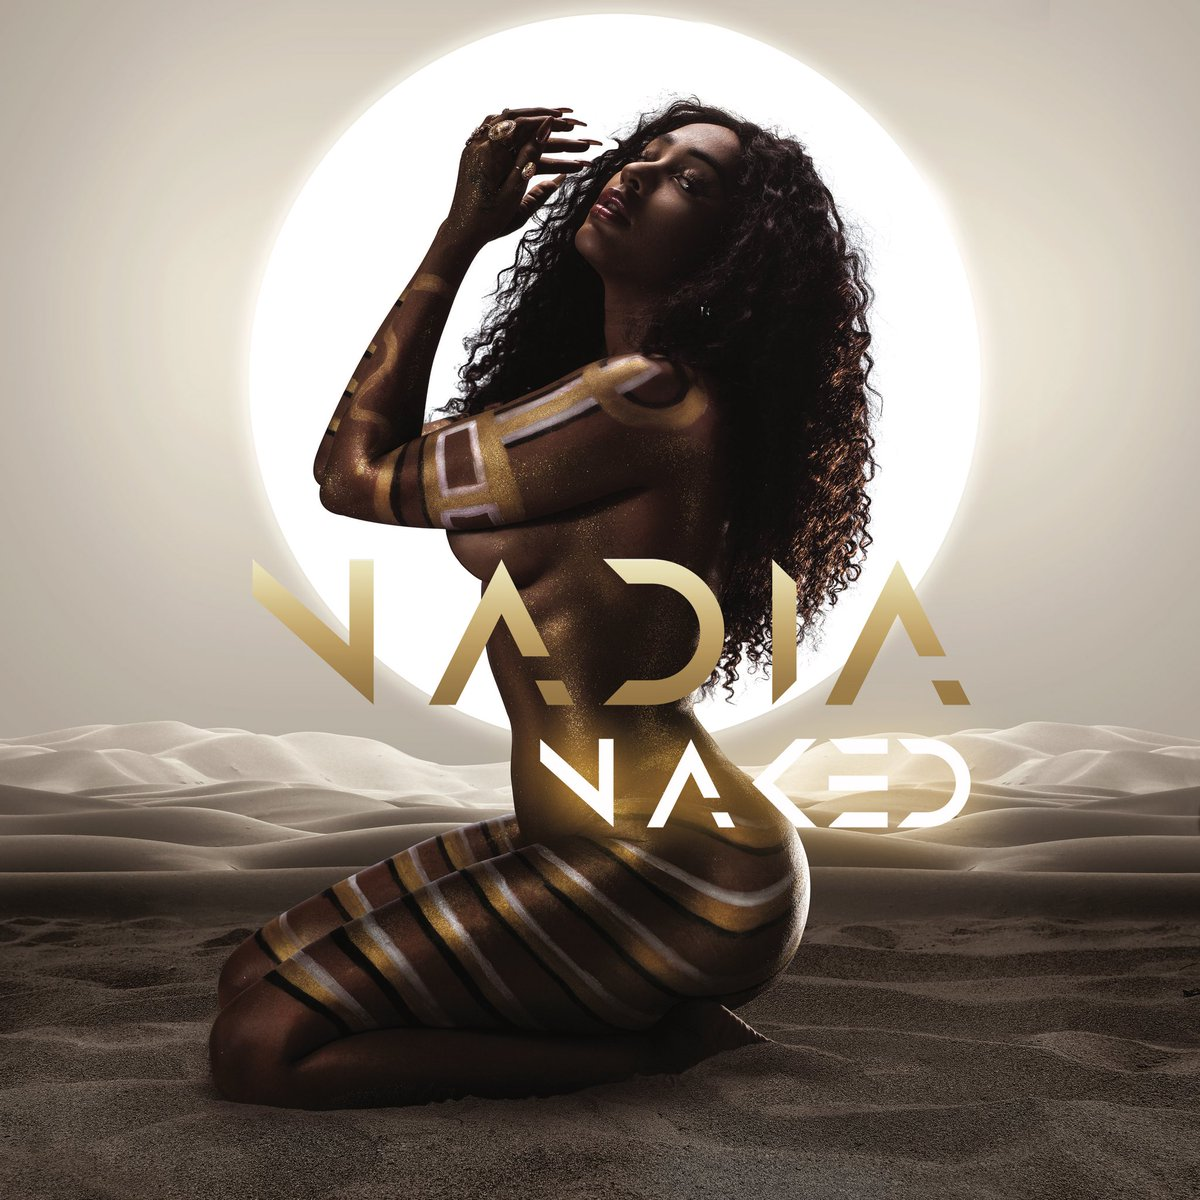 nadia naked All You Need To Know About Nadia Nakai's Upcoming 'Nadia Naked' Debut Album So Far D6wTDrdXkAAi Qt